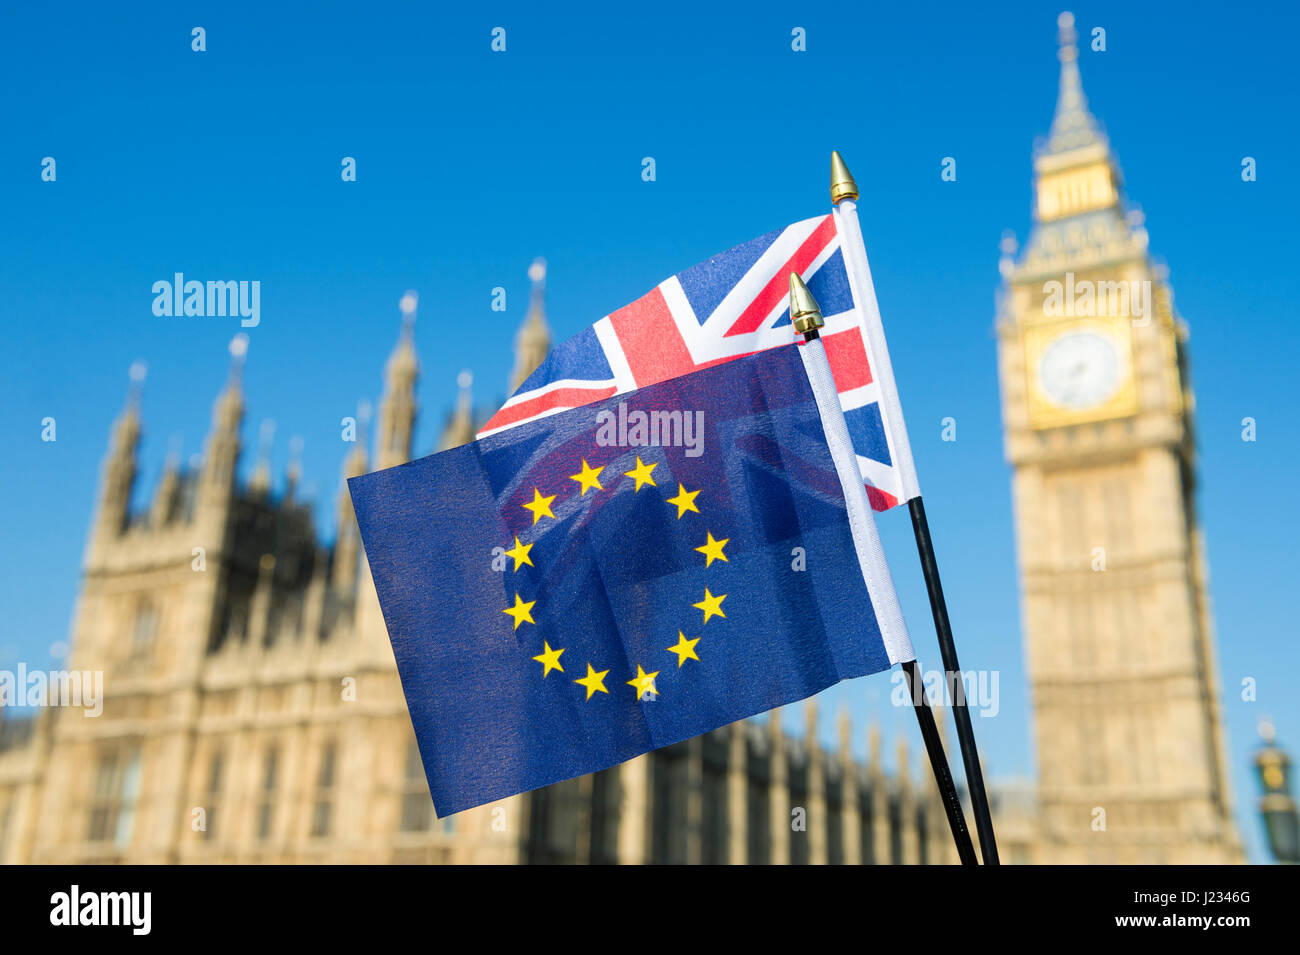 EU European and UK United Kingdom flags fly together in solidarity in bright blue sky in front of the Houses of - Stock Image